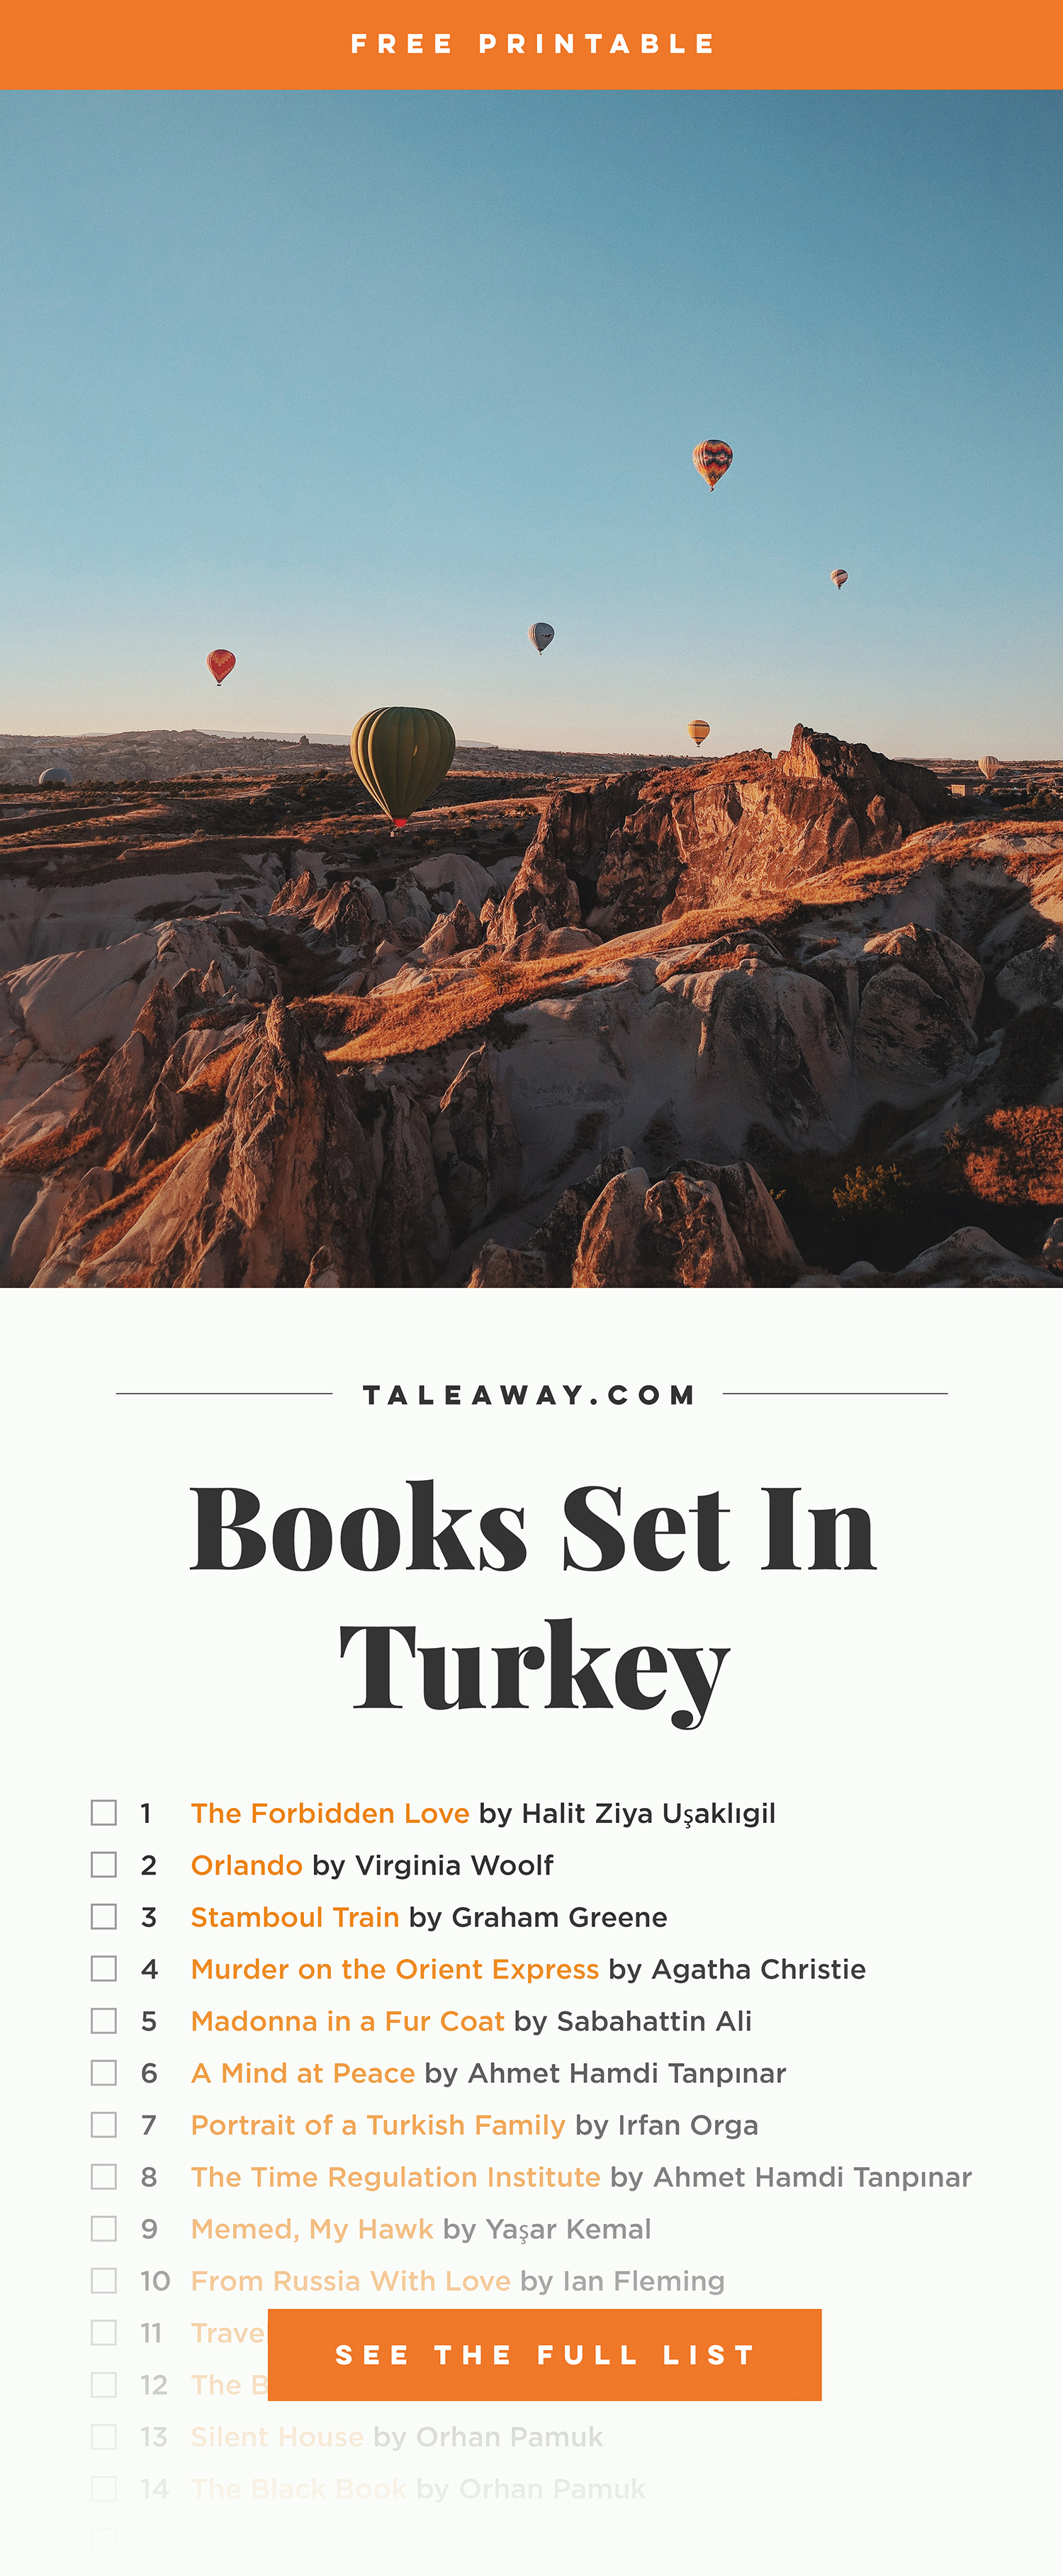 Books Set in Turkey - For more books that inspire travel visit www.taleaway.com - turkish books, turkish novels, turkish book cover, turkish authors, turkey books, istanbul book, turkey inspiration, books and travel, travel reads, reading list, books to read, books set in different countries, turkish books in english, turkey reading list, turkey reading challenge